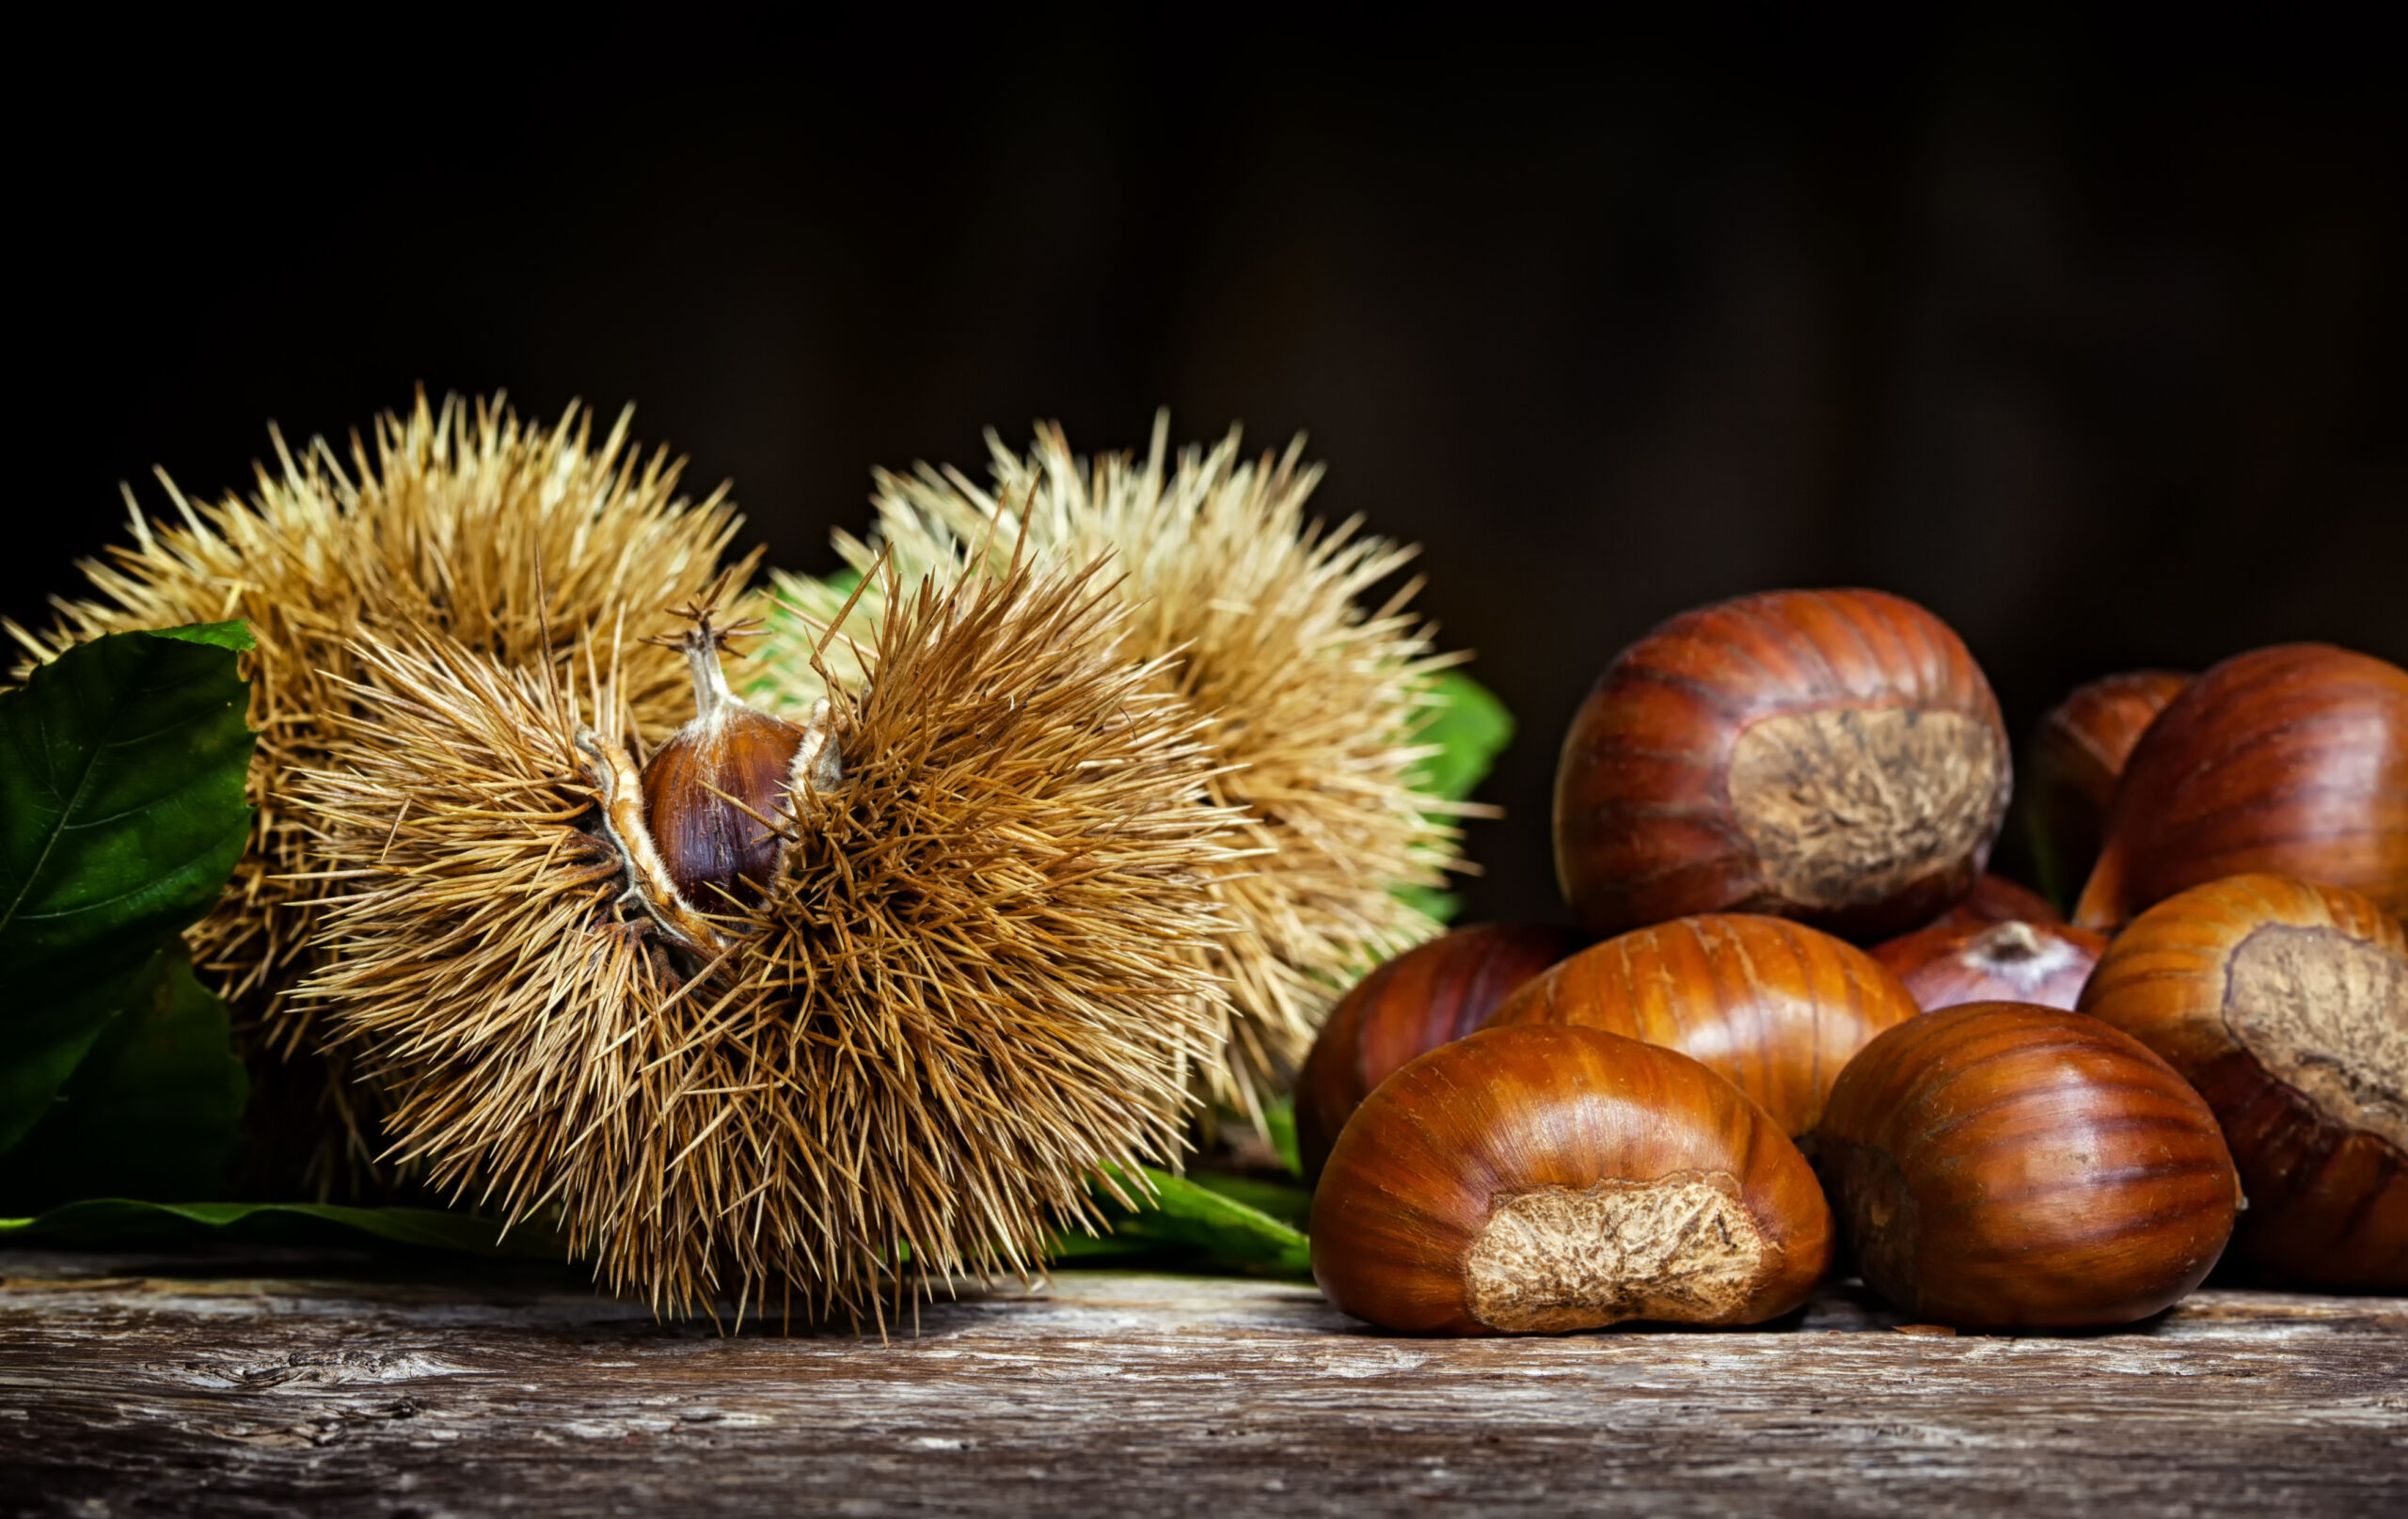 Is Horse Chestnut Safe To Use?